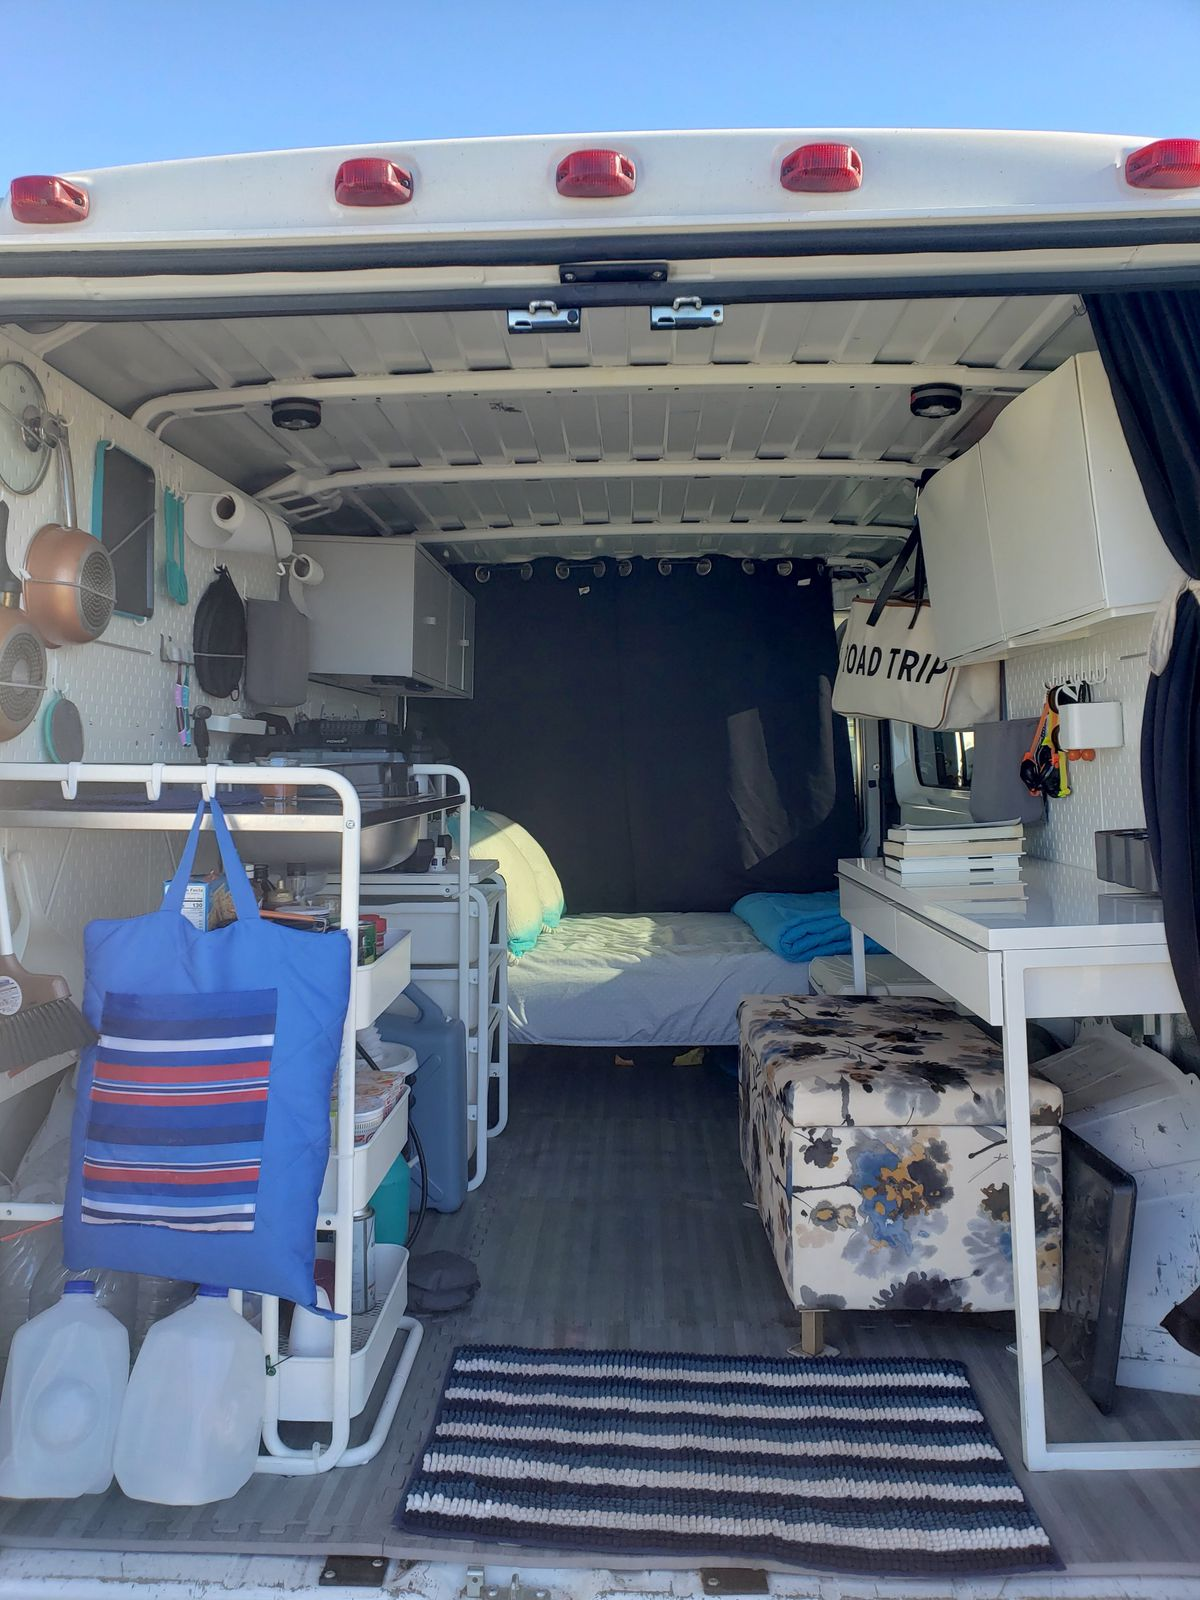 The rear view of a passenger cargo van that's been transformed into a camper. The back doors are open and you can see a desk on the right and a kitchen on the left.